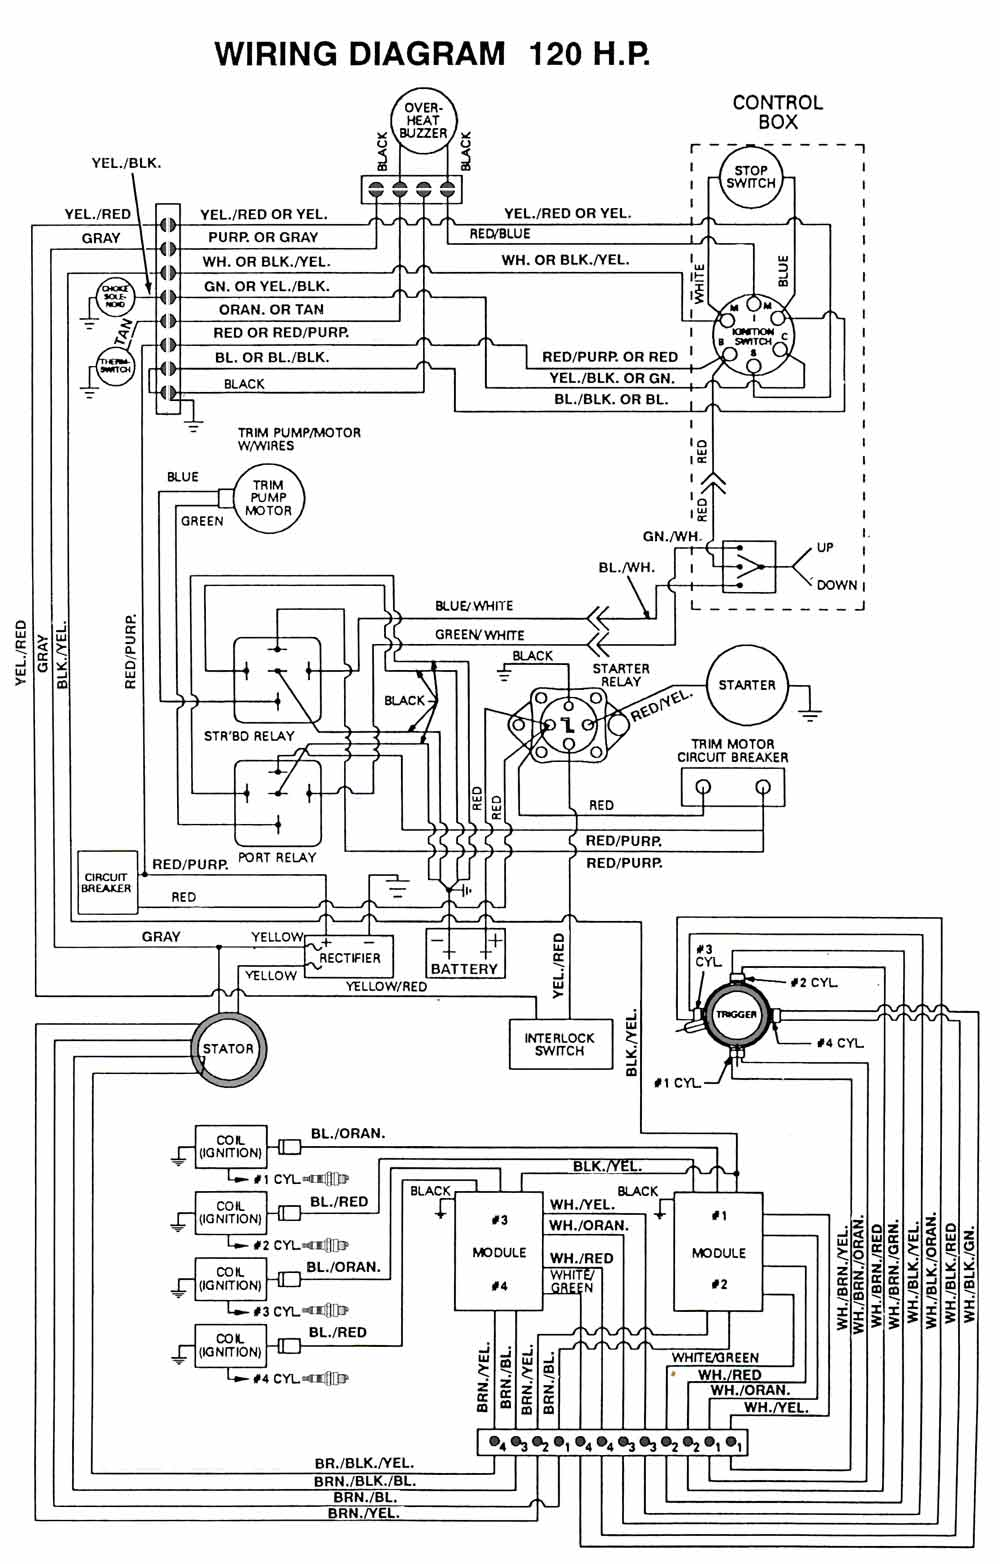 johnson trolling motor wiring, johnson snowmobile wiring diagram, johnson boat motor parts, mercruiser 3.0 firing order diagram, johnson boat motor carburetor, lowrance nmea 2000 network diagram, johnson boat motor ignition key, johnson wiring harness diagram, boat steering system diagram, mercury boat motor diagram, johnson outboard ignition switch, 25 horse johnson motor diagram, 50 hp johnson parts diagram, johnson boat motor cover, johnson tilt and trim wiring diagram, johnson outboard diagrams, johnson controls for boat, johnson outboard motor repair, johnson boat motor engine, johnson outboard wiring harness, on johnson boat motor wiring diagram